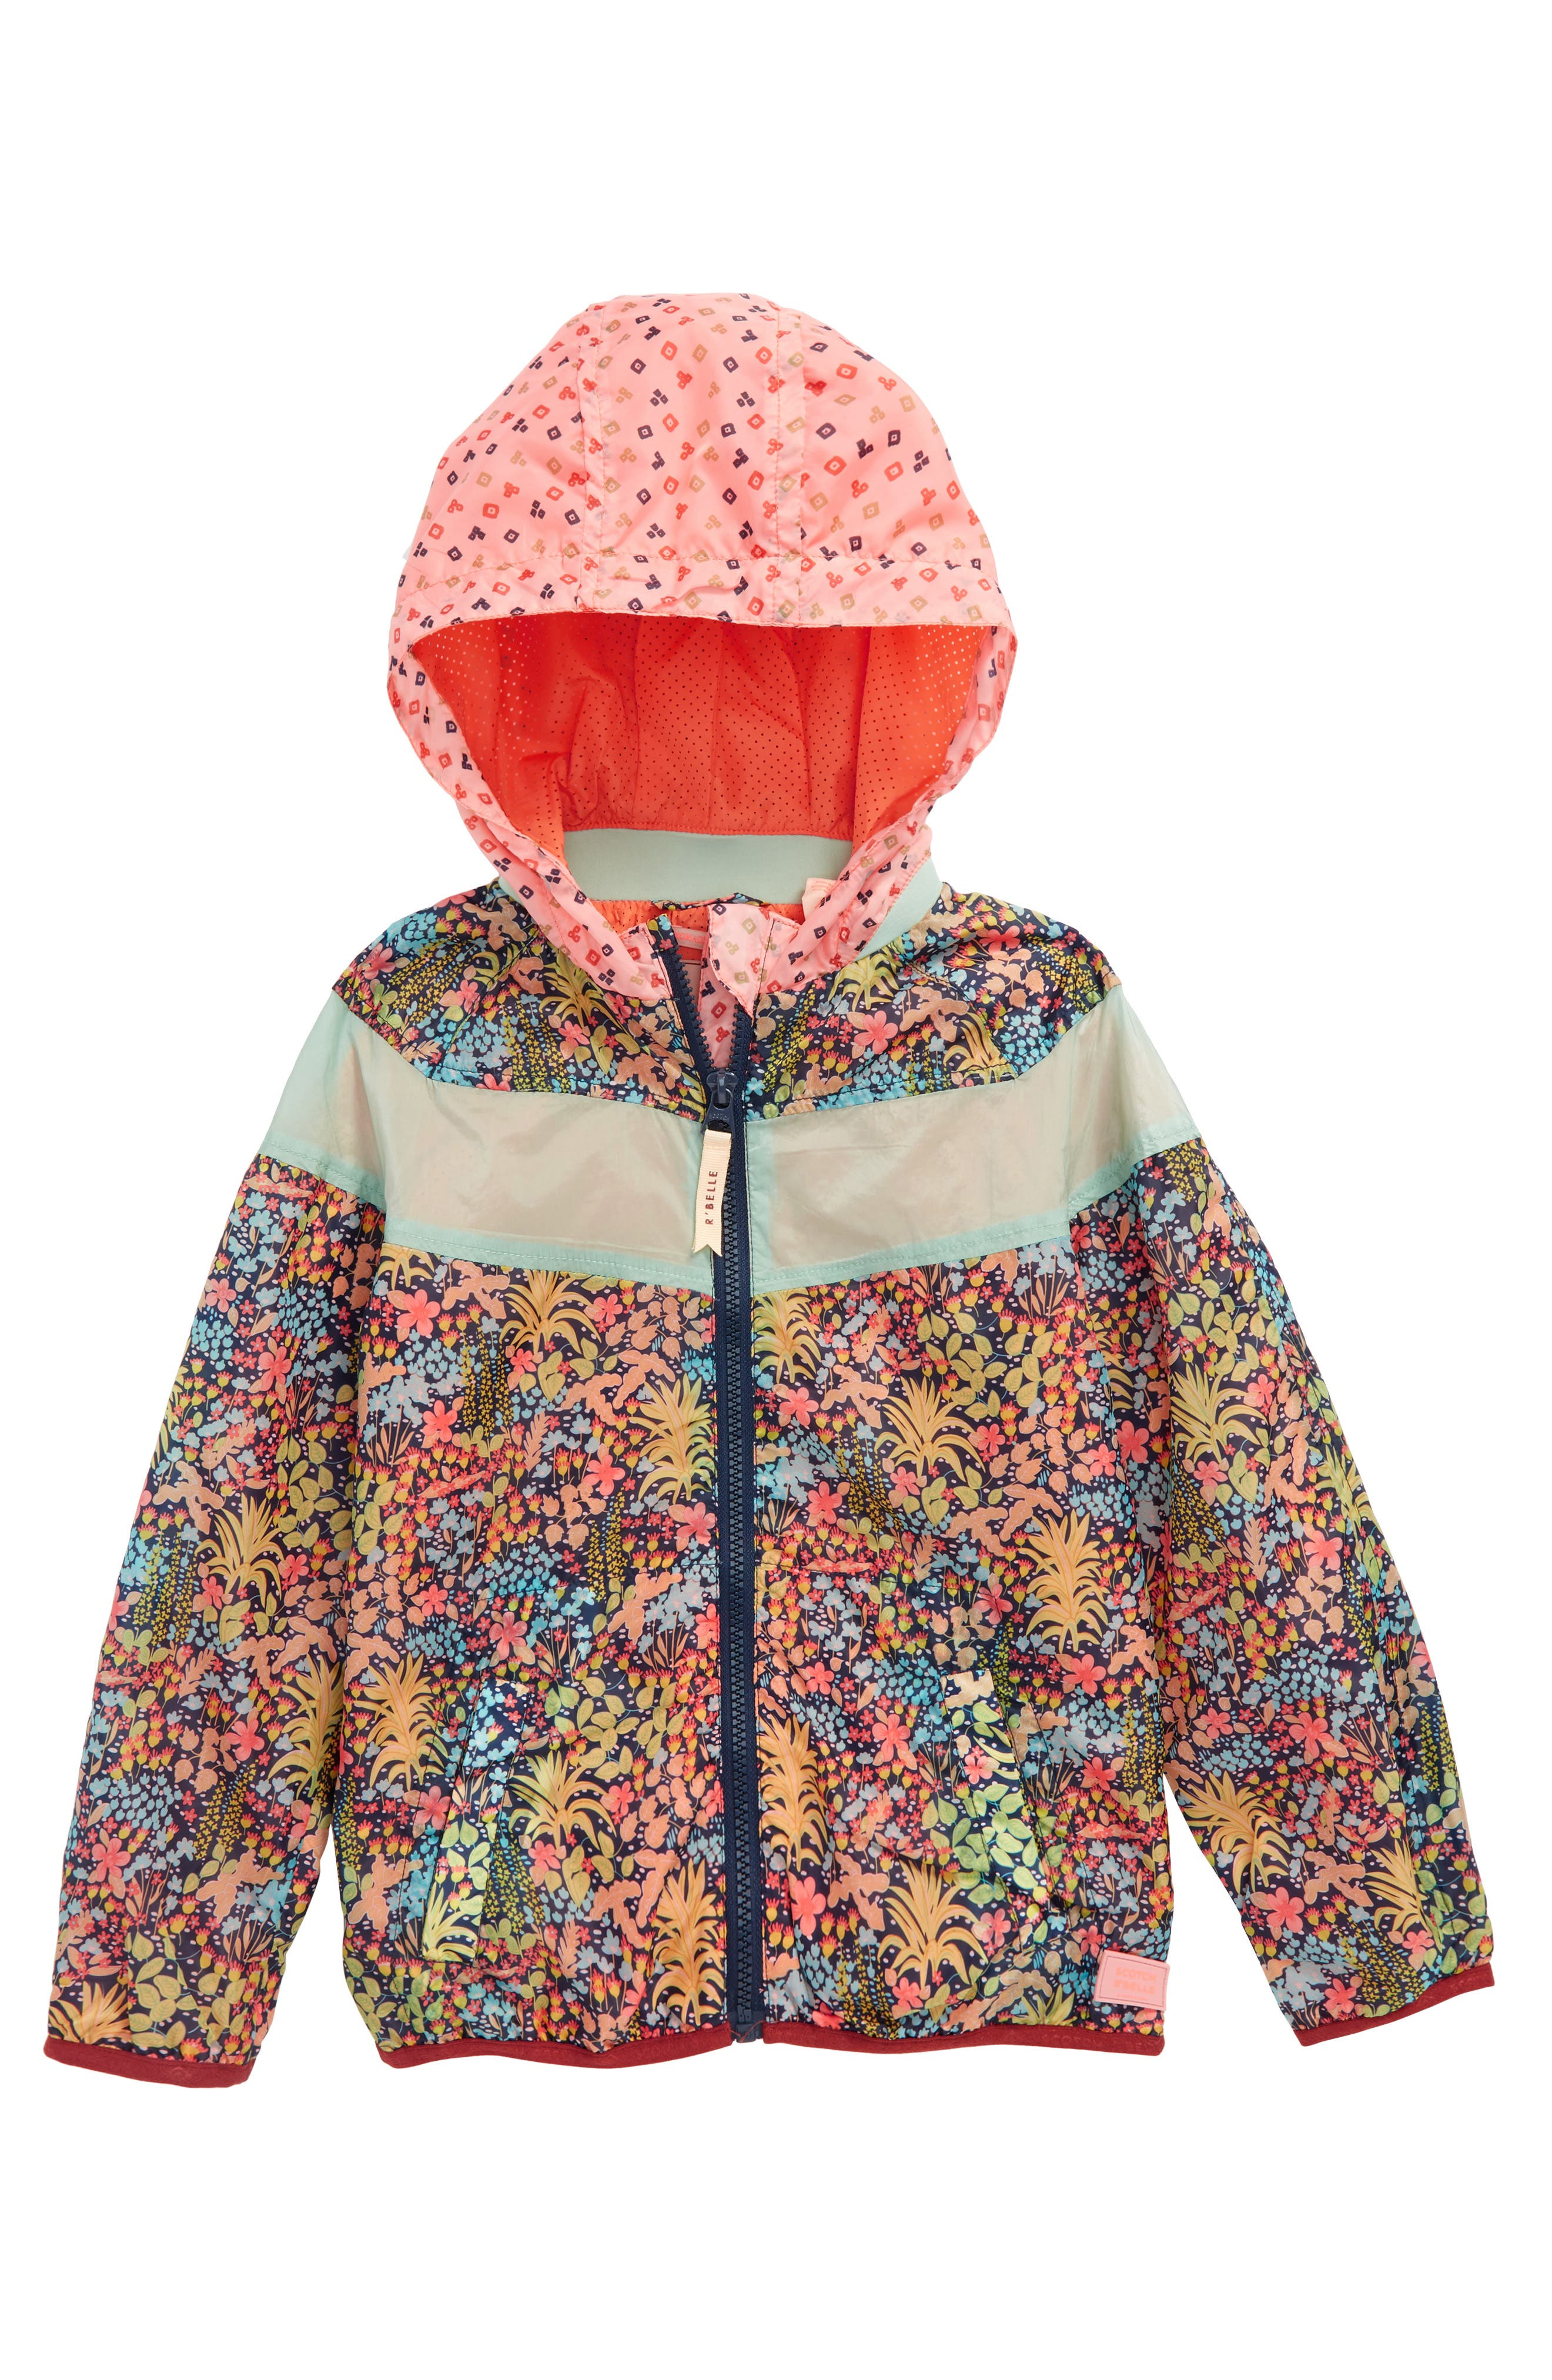 Scotch R'Belle Print Colorblock Hooded Jacket,                             Main thumbnail 1, color,                             218 B Print